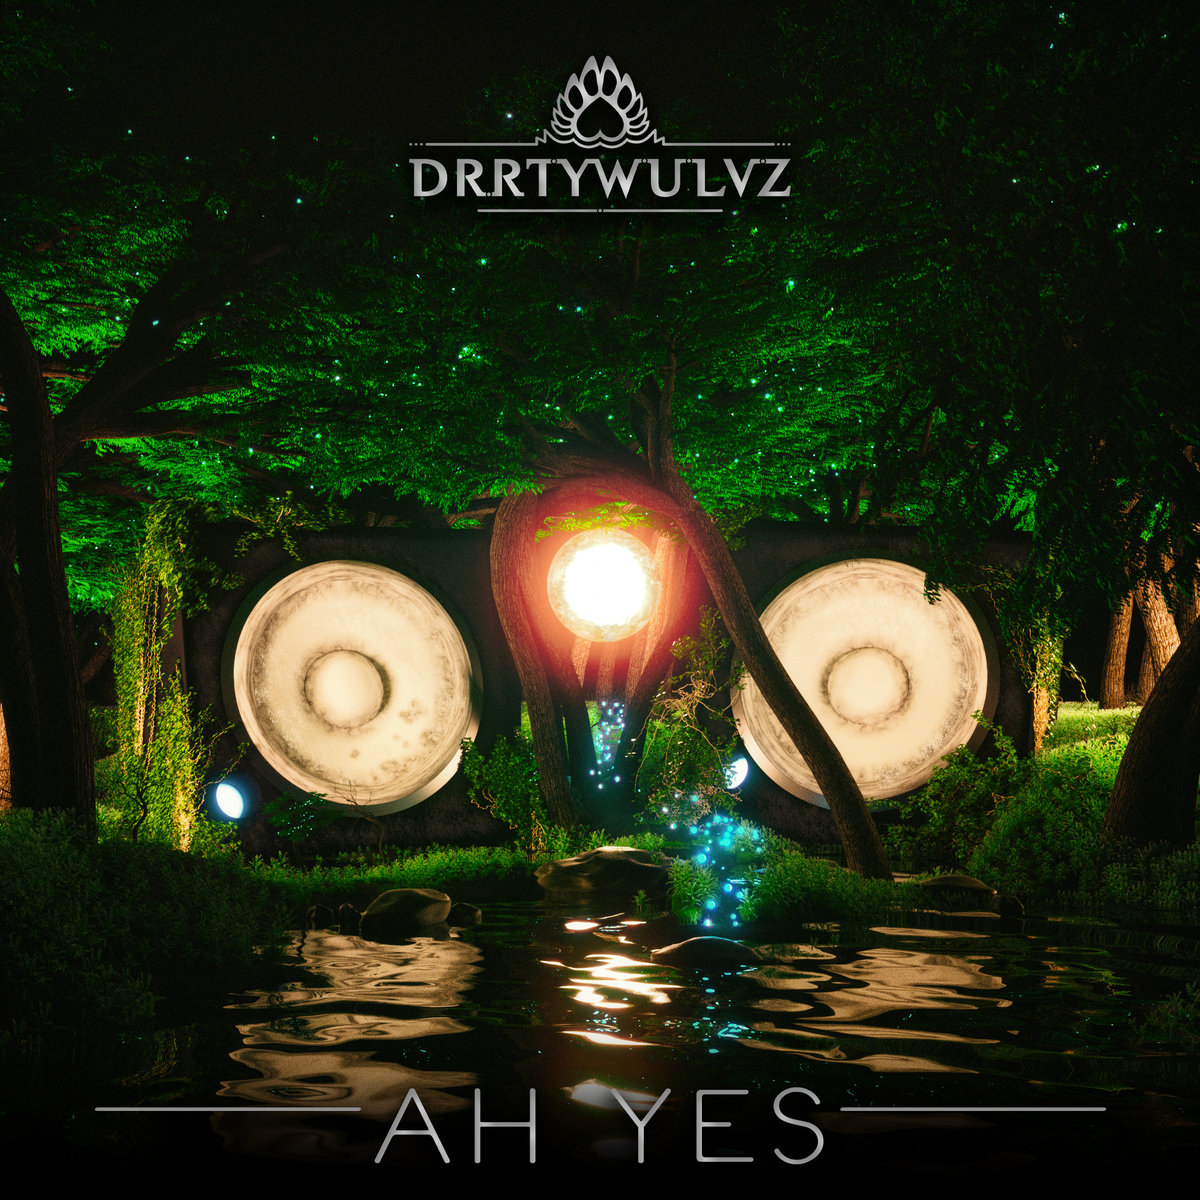 DRRTYWULVZ - Red Light @ 'Ah Yes' album (bass, drrtywulvz)